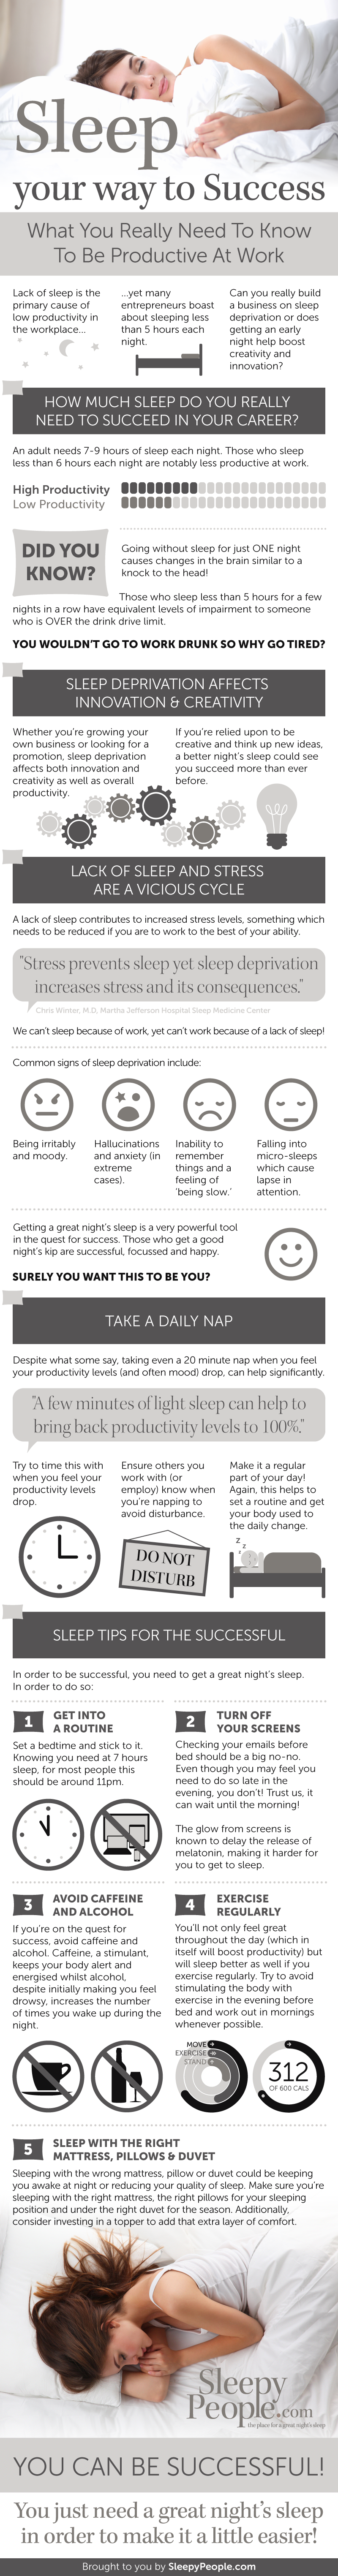 sleep your way to success infographic